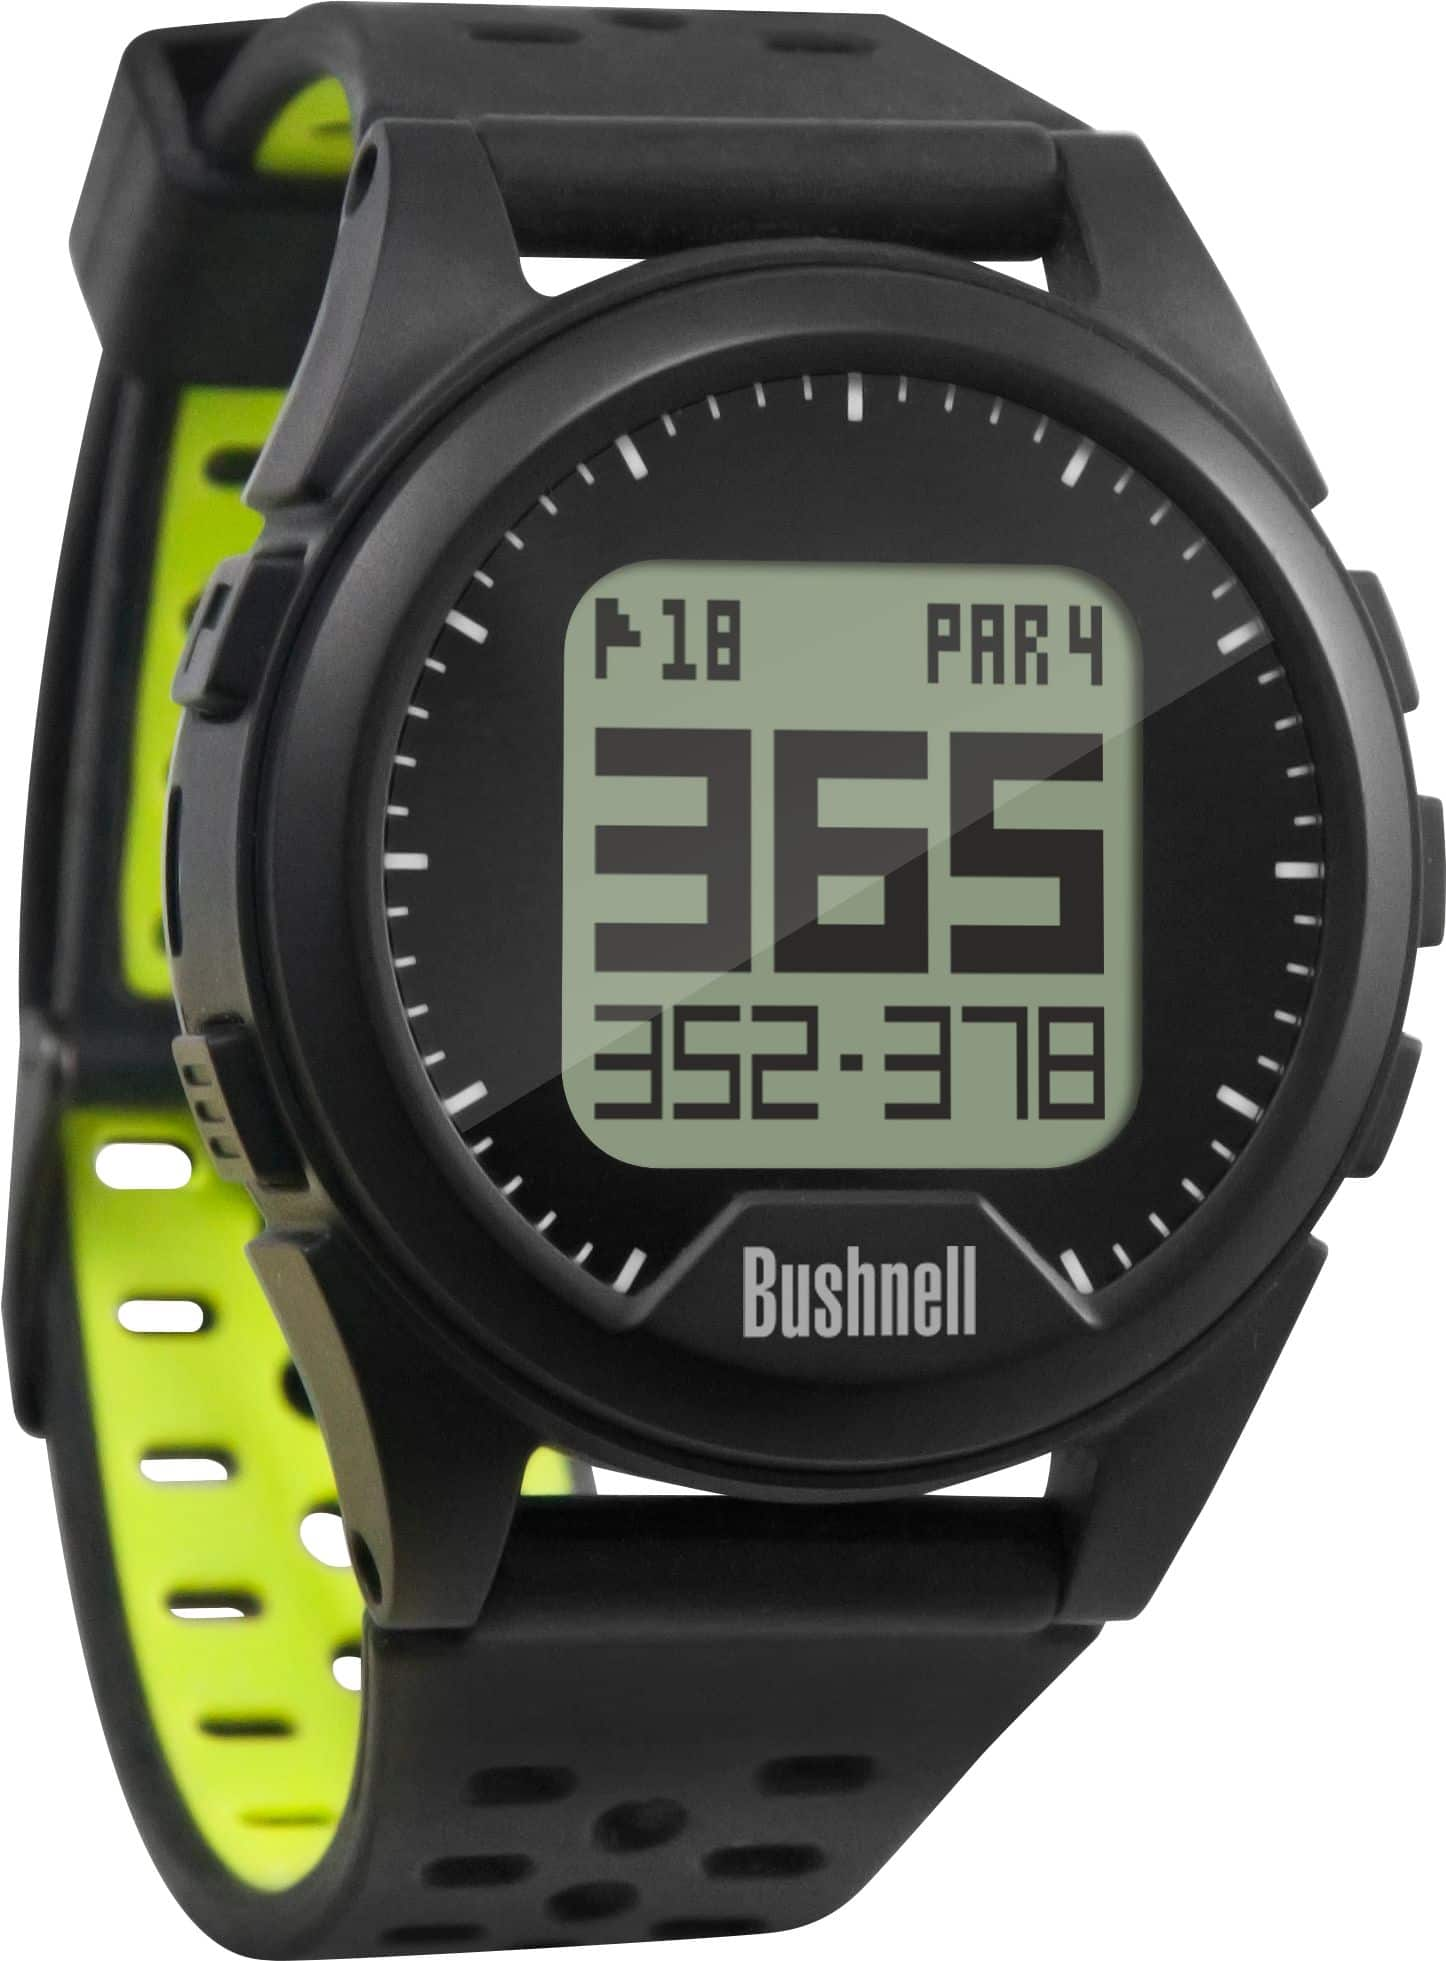 Bushnell NEO-iON GPS Golf Watch - $99 and free shipping